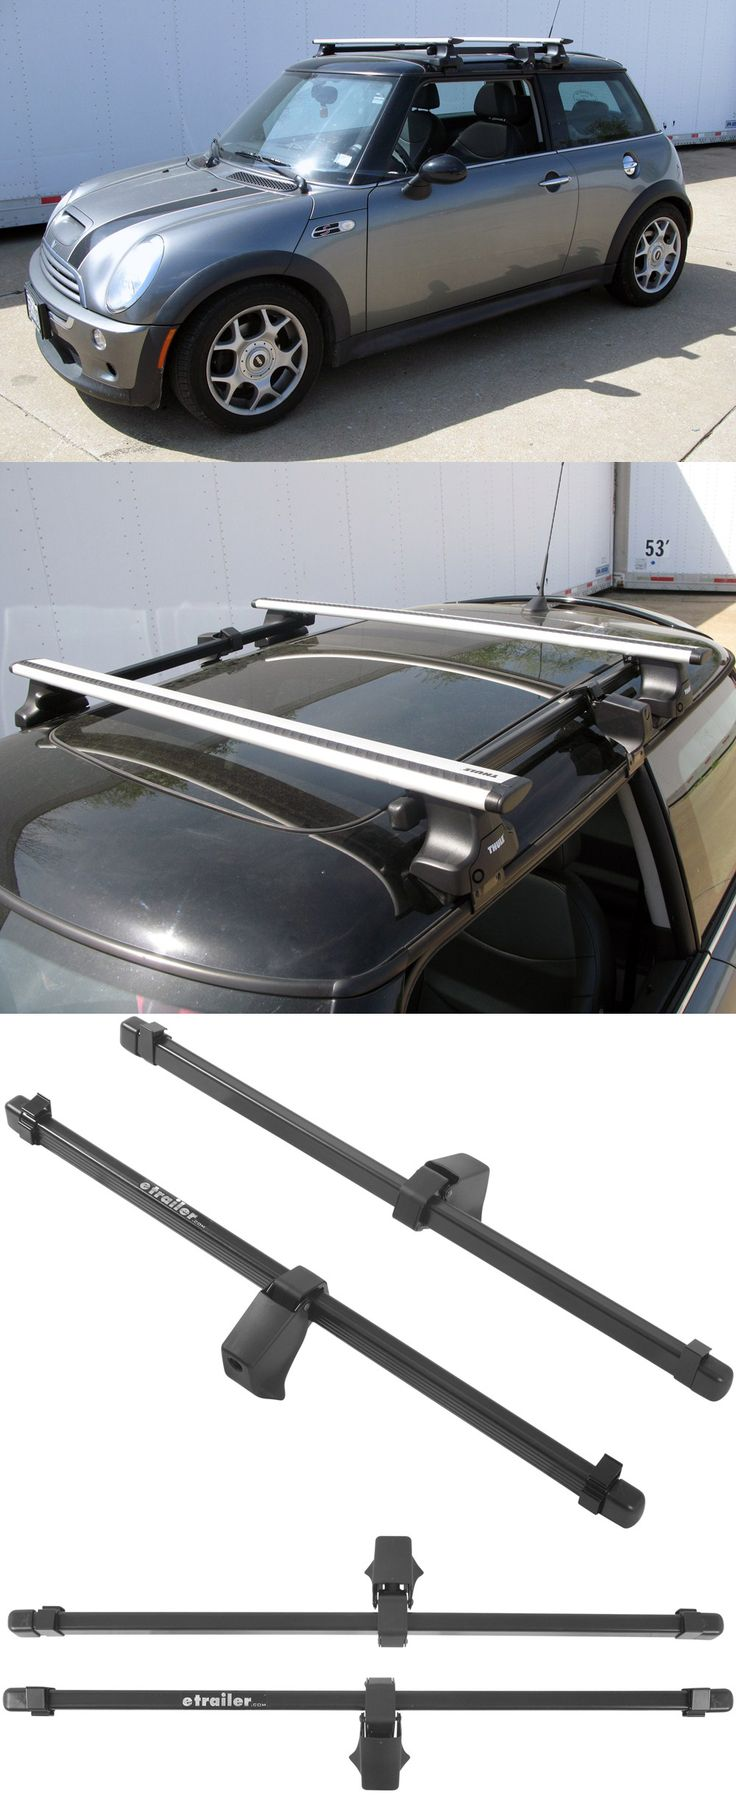 Thule square load bars attach to the thule roof rack feet to create a sturdy